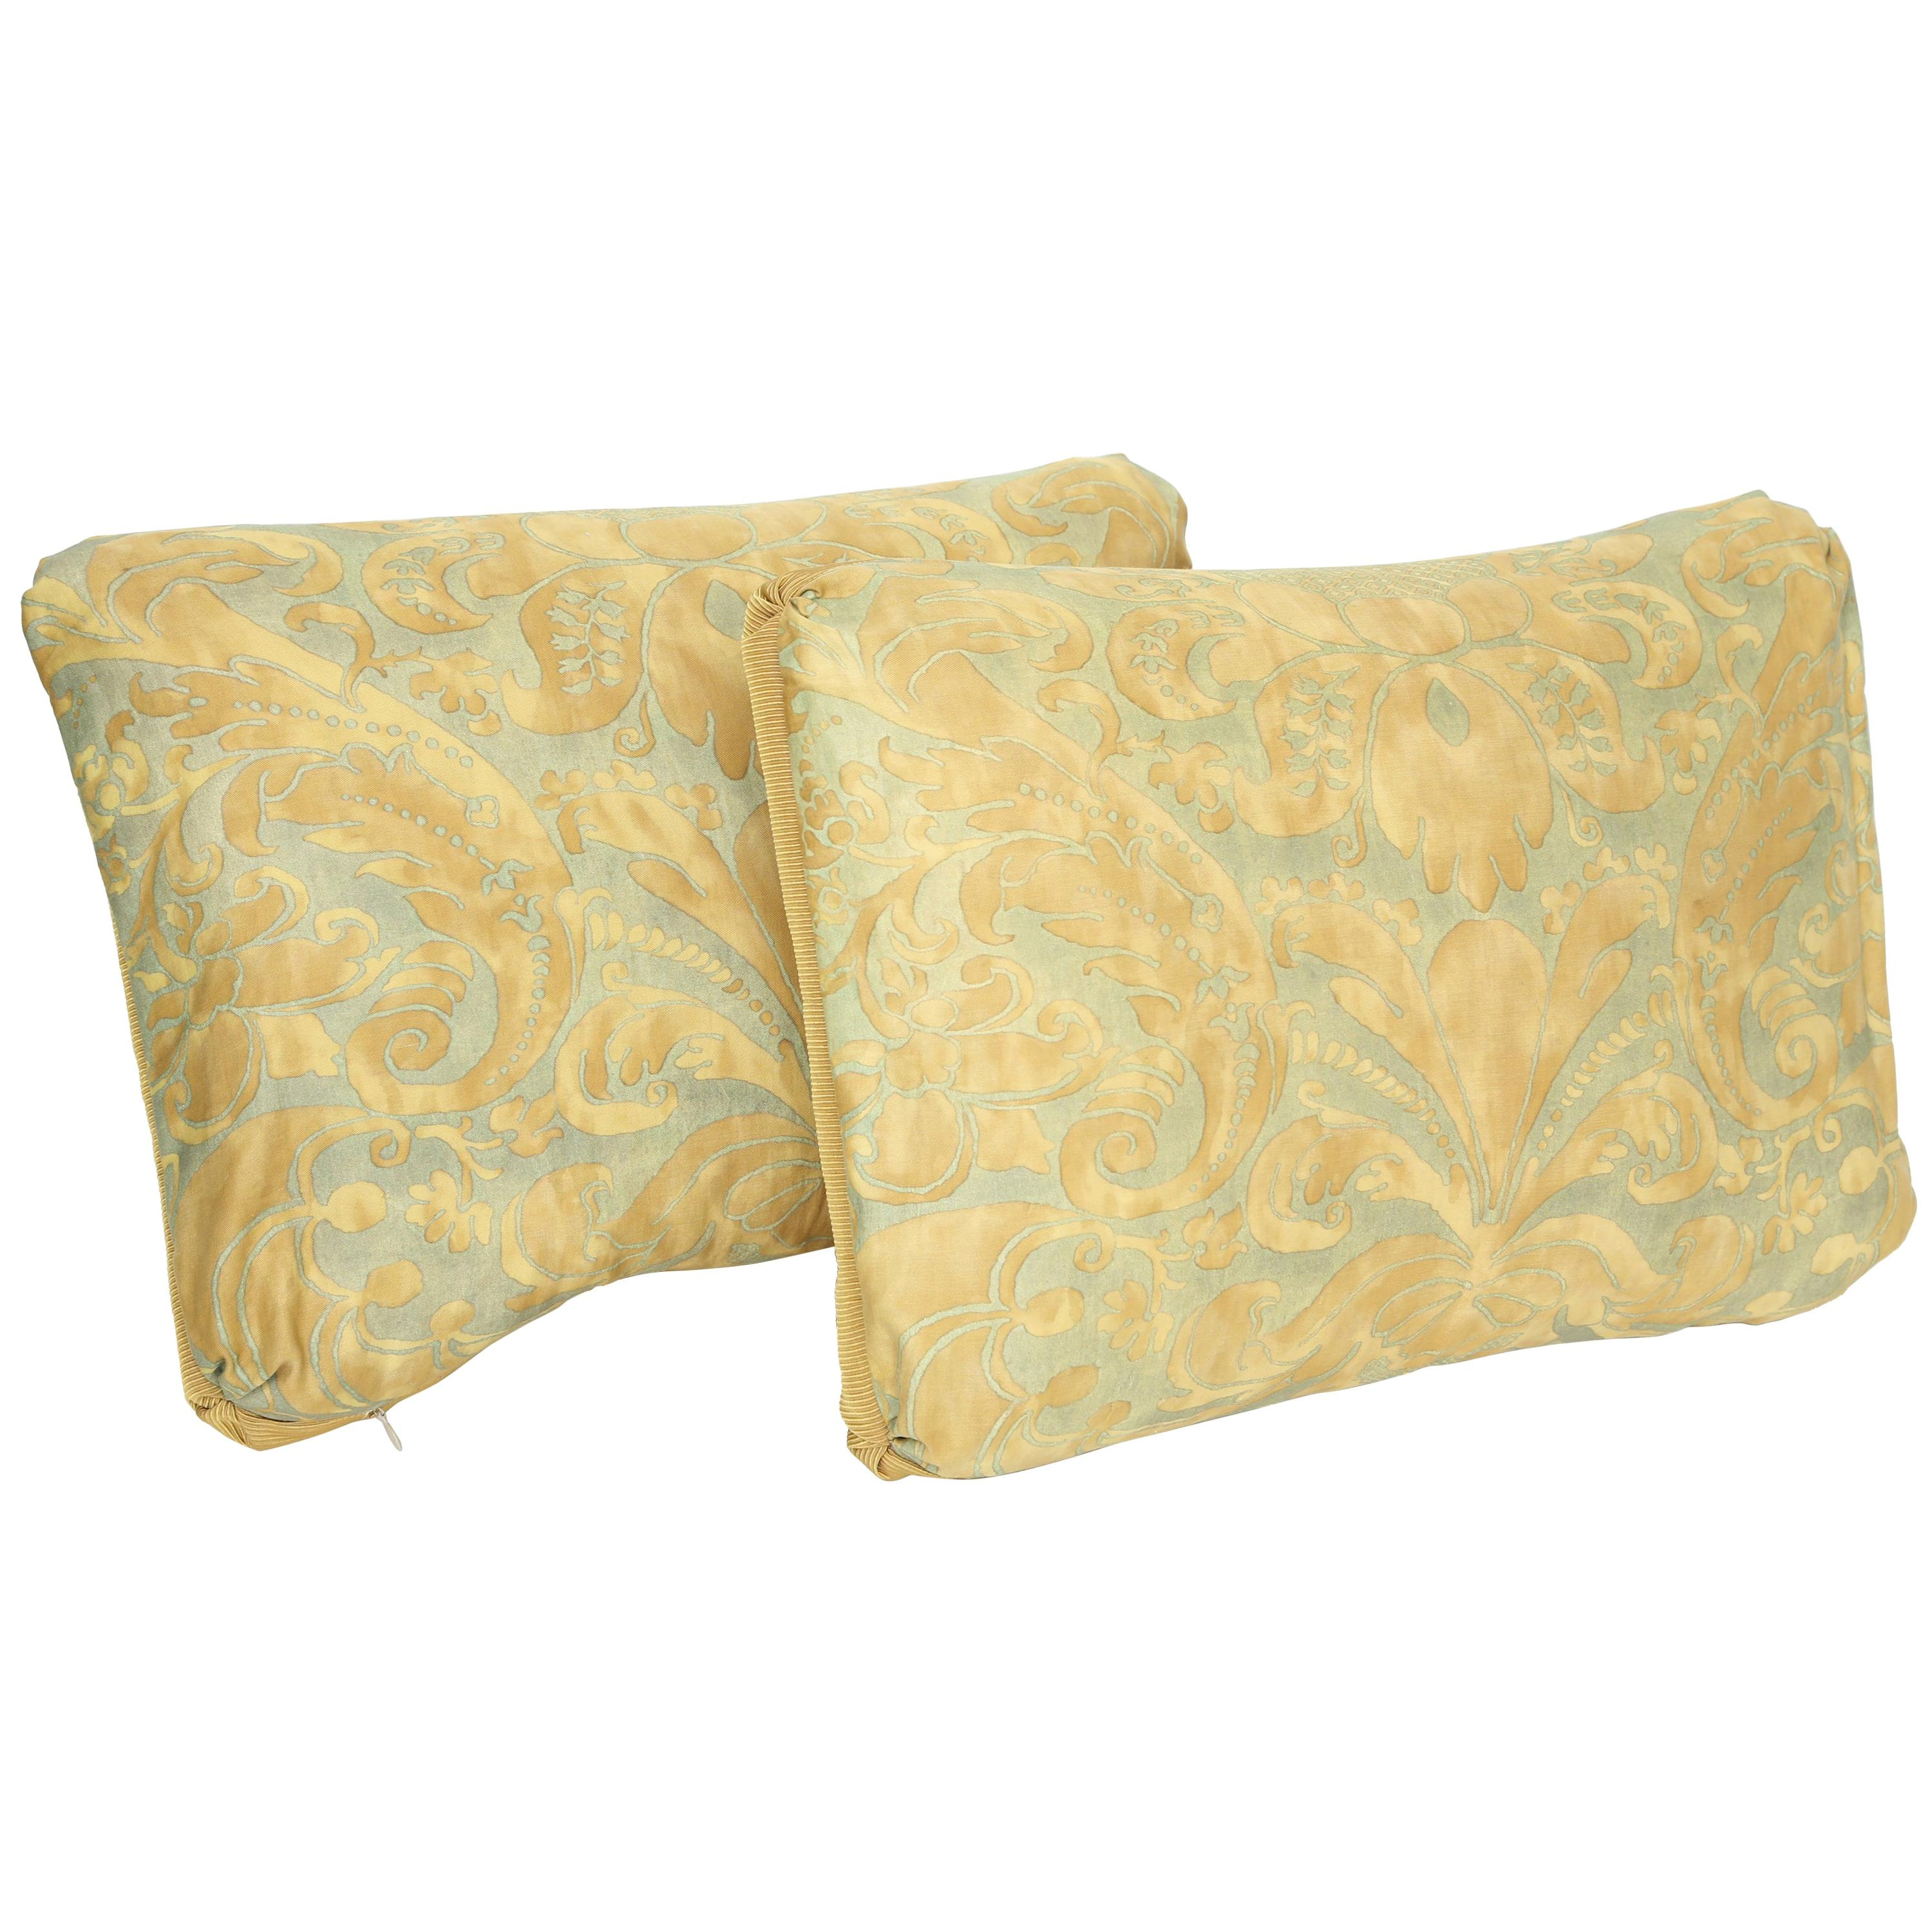 """Fortuny Oblong Cushions in the """"Caravaggio"""" Pattern-A Pair"""